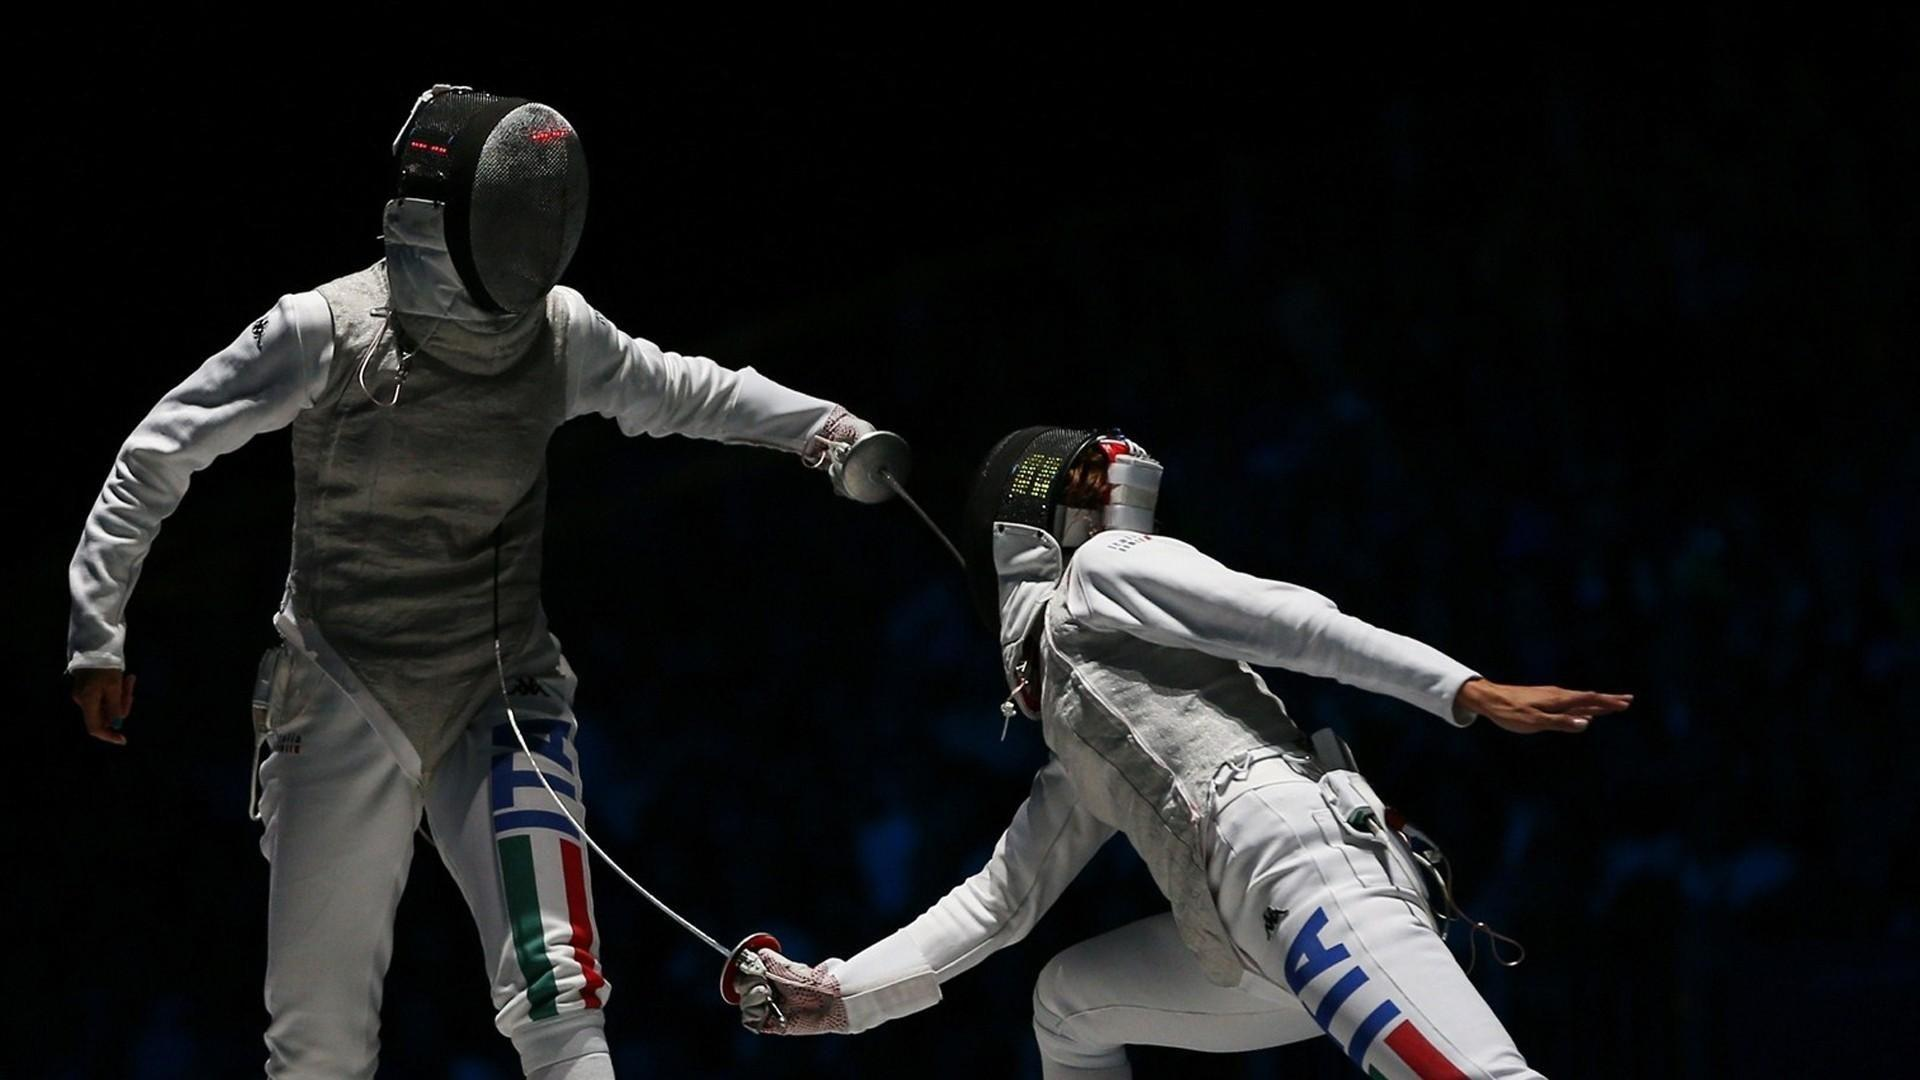 Sports fight fencing olympics 2012 wallpaper | (106679)